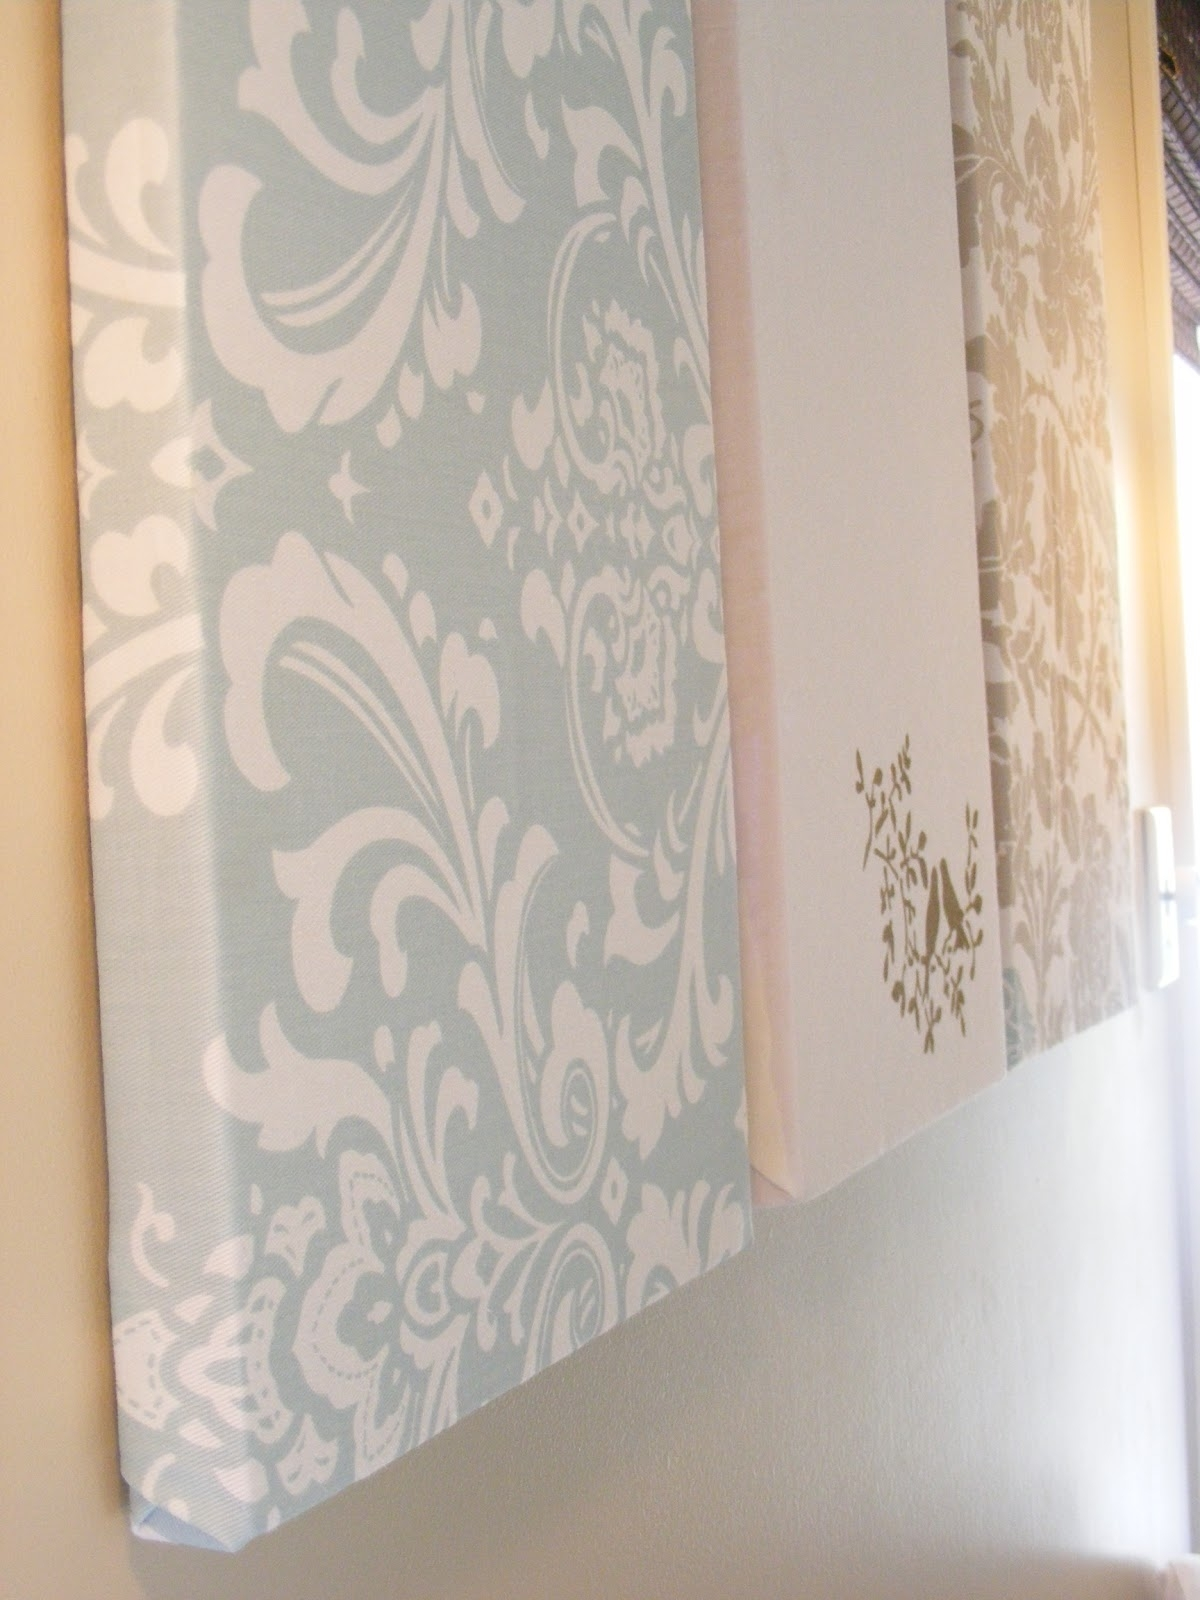 The Complete Guide To Imperfect Homemaking: Simple, Thrifty Diy Art Intended For 2018 Fabric Covered Wall Art (View 12 of 15)